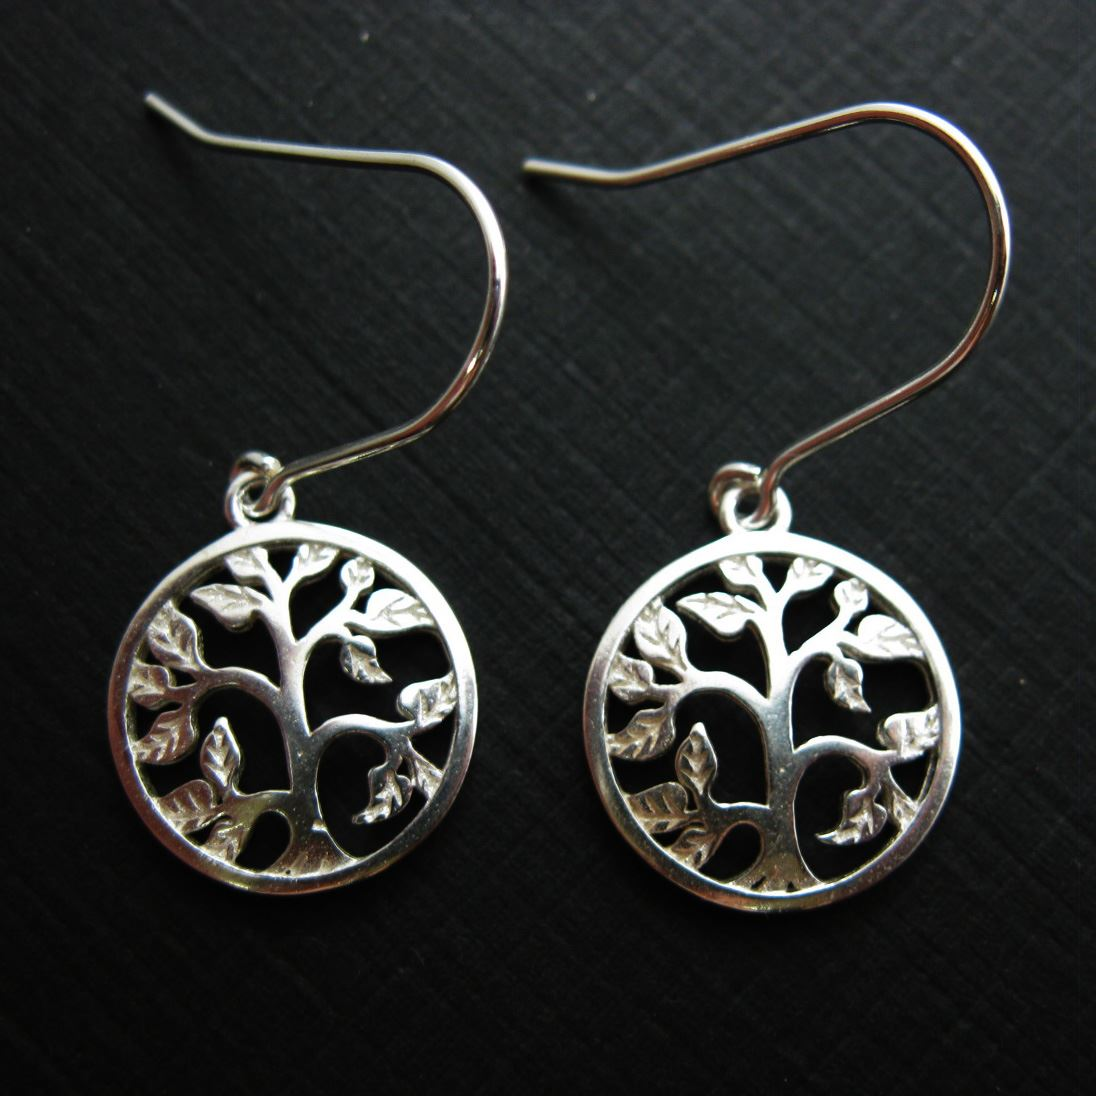 925 Sterling Silver Earrings-Tree with leaves Charm